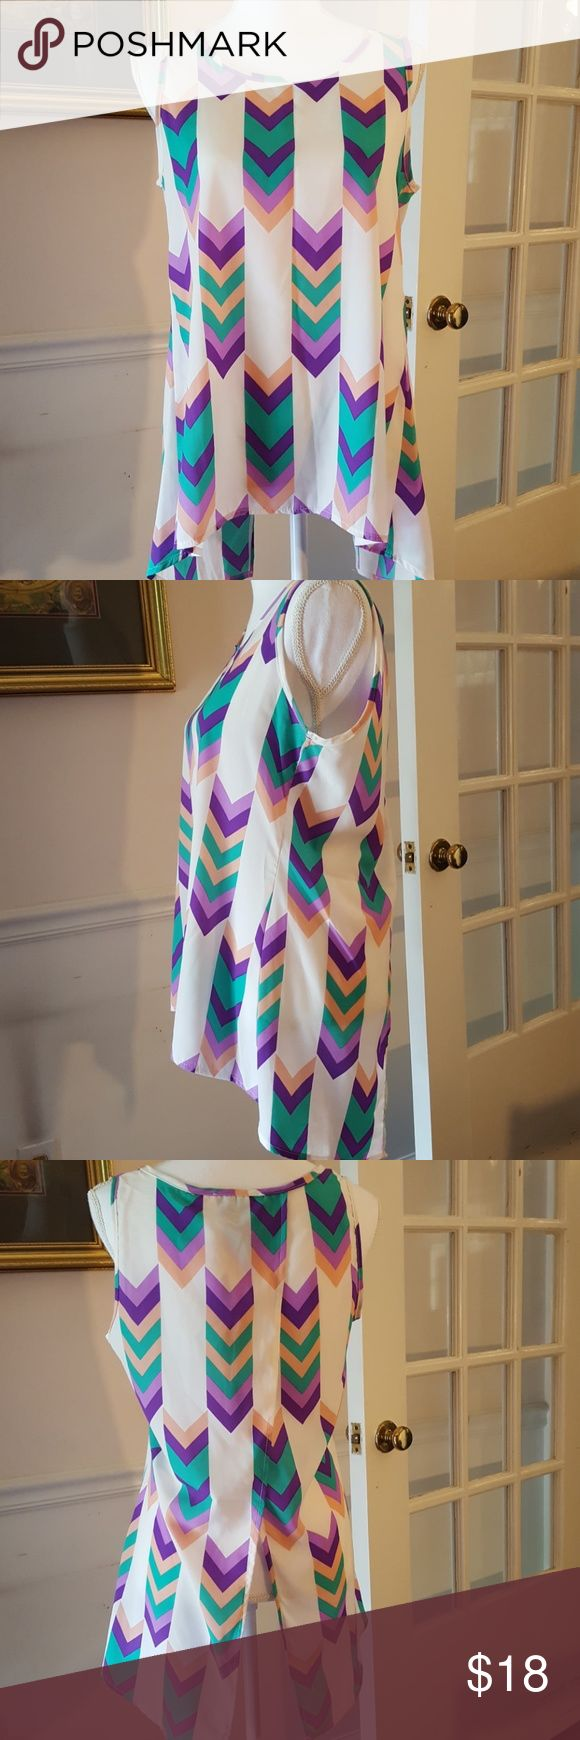 Peach Love California Chevron High Low Blouse Med Cute Purple, green and peach chevron design sleeveless high low top with asymmetrical hem. Size Medium. Open flap back. Excellent Used Condition. Peach Love California Tops